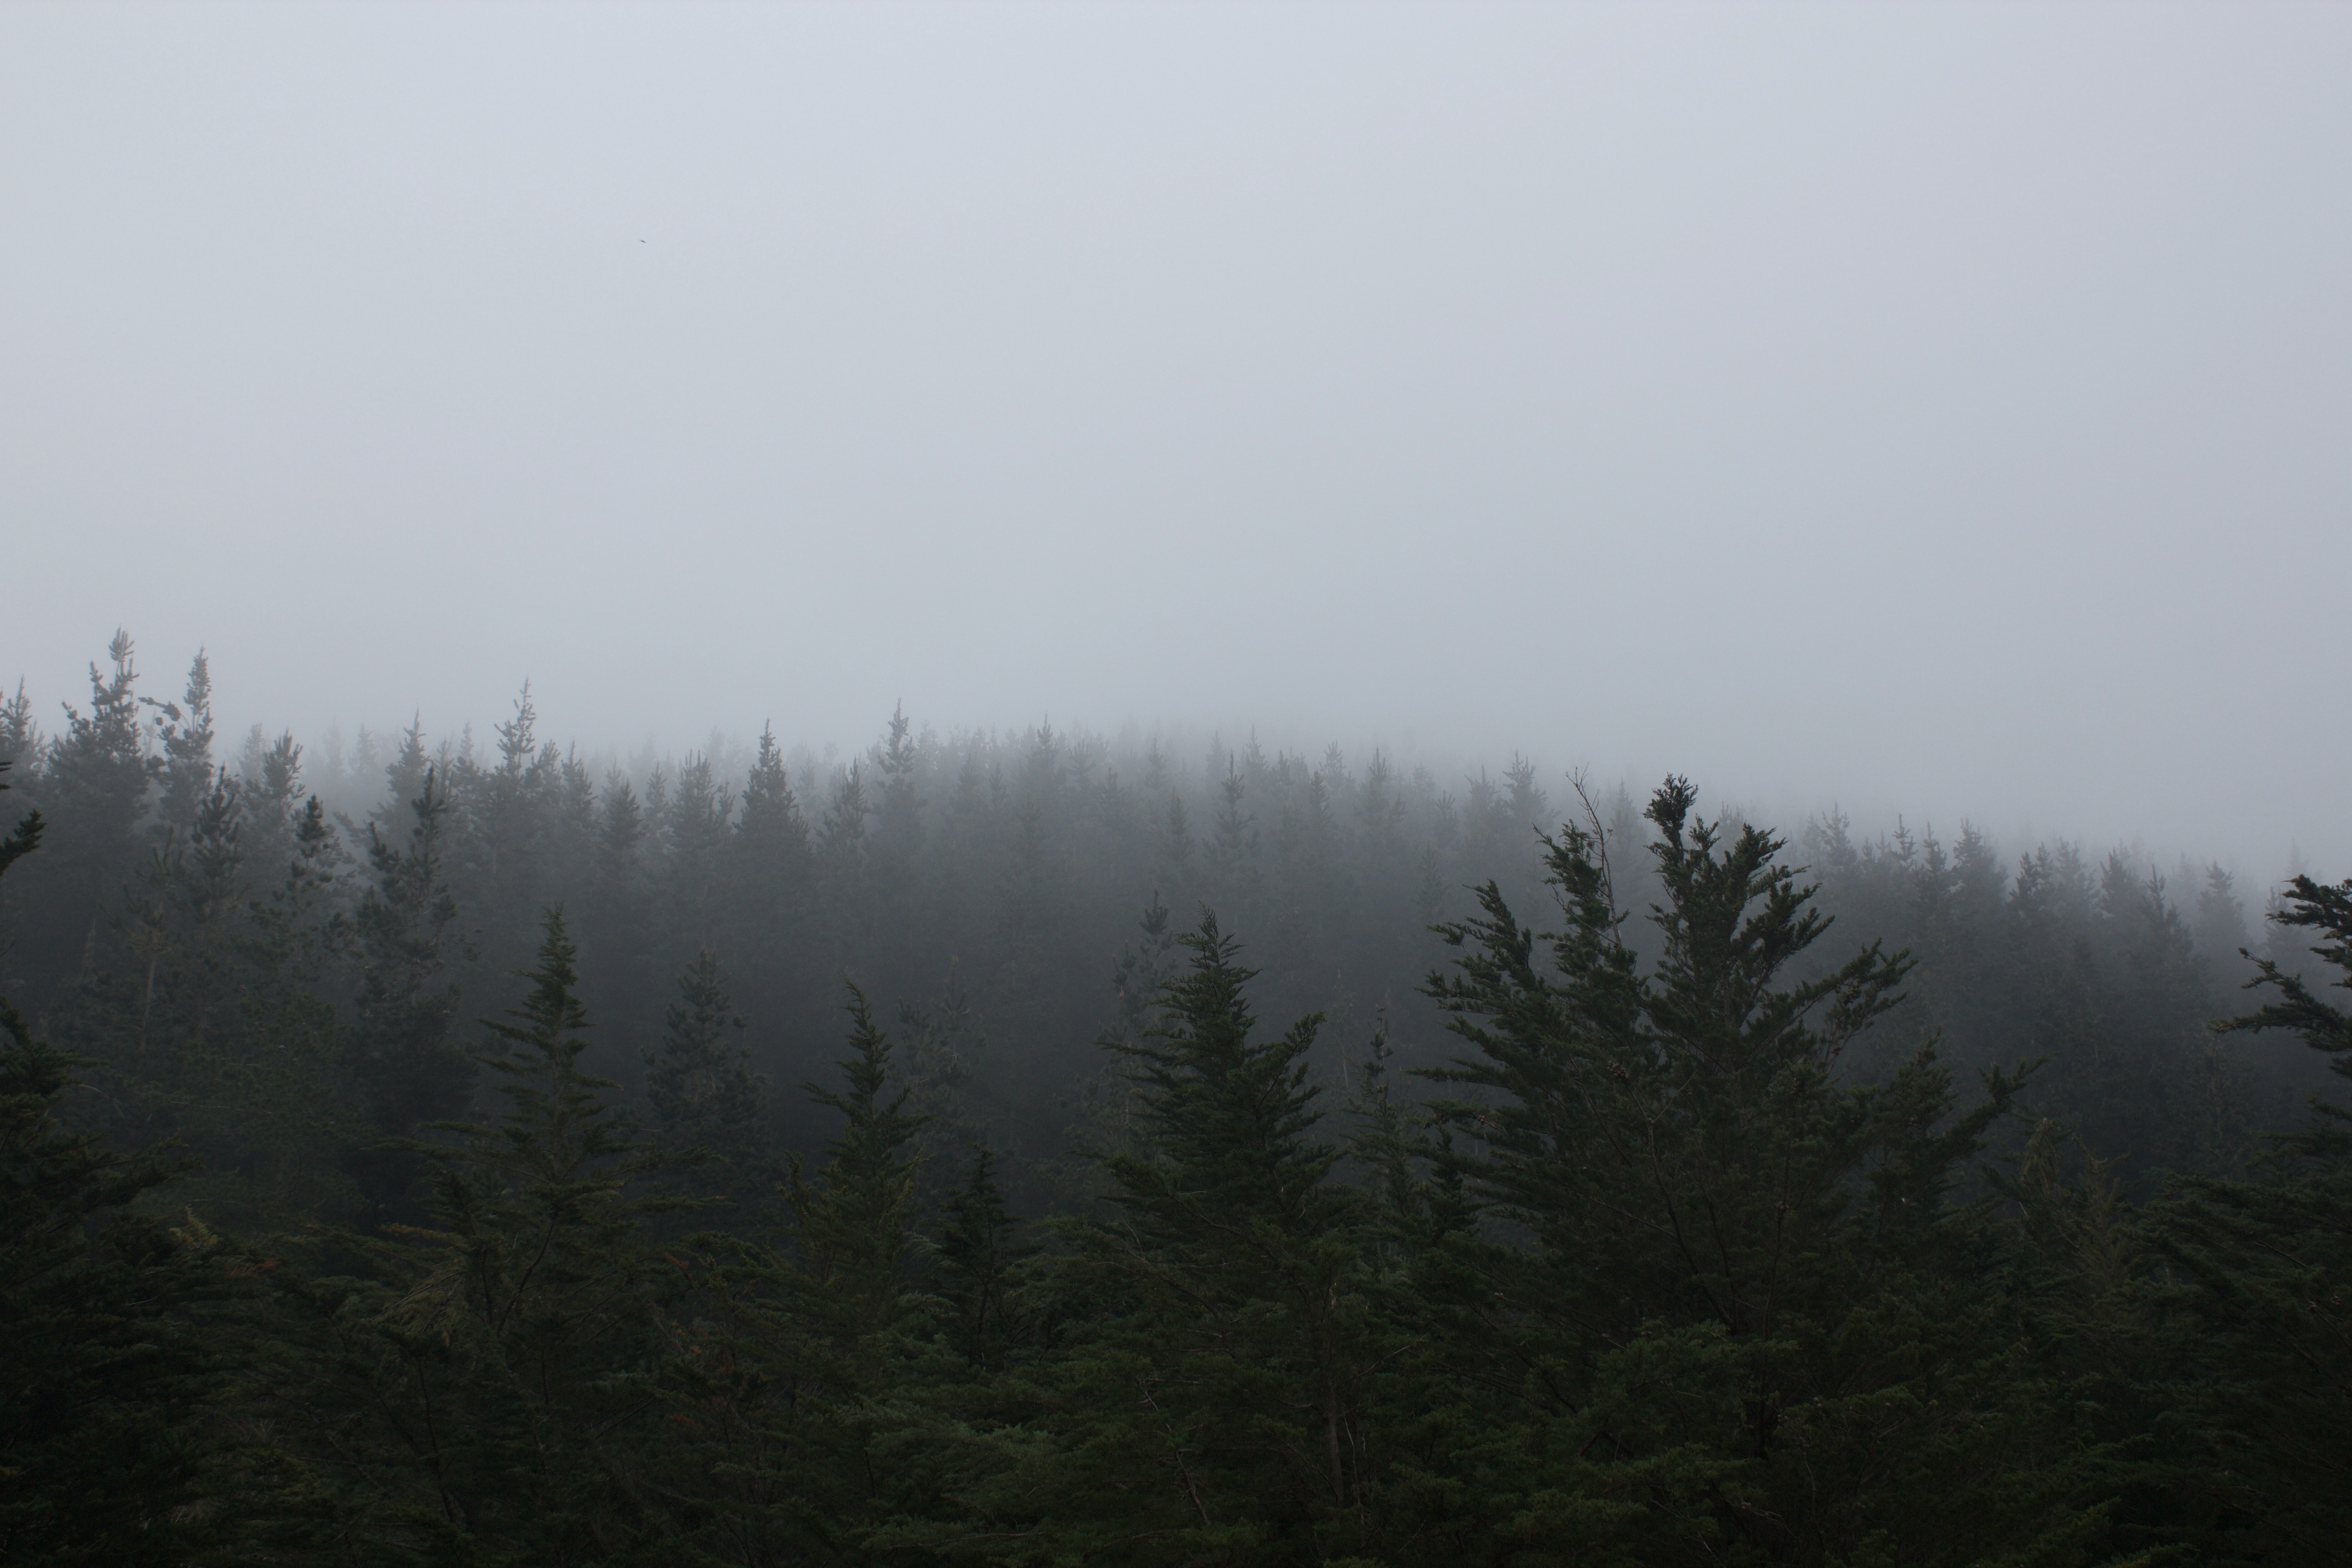 A coniferous forest shrouded in a thick gray mist